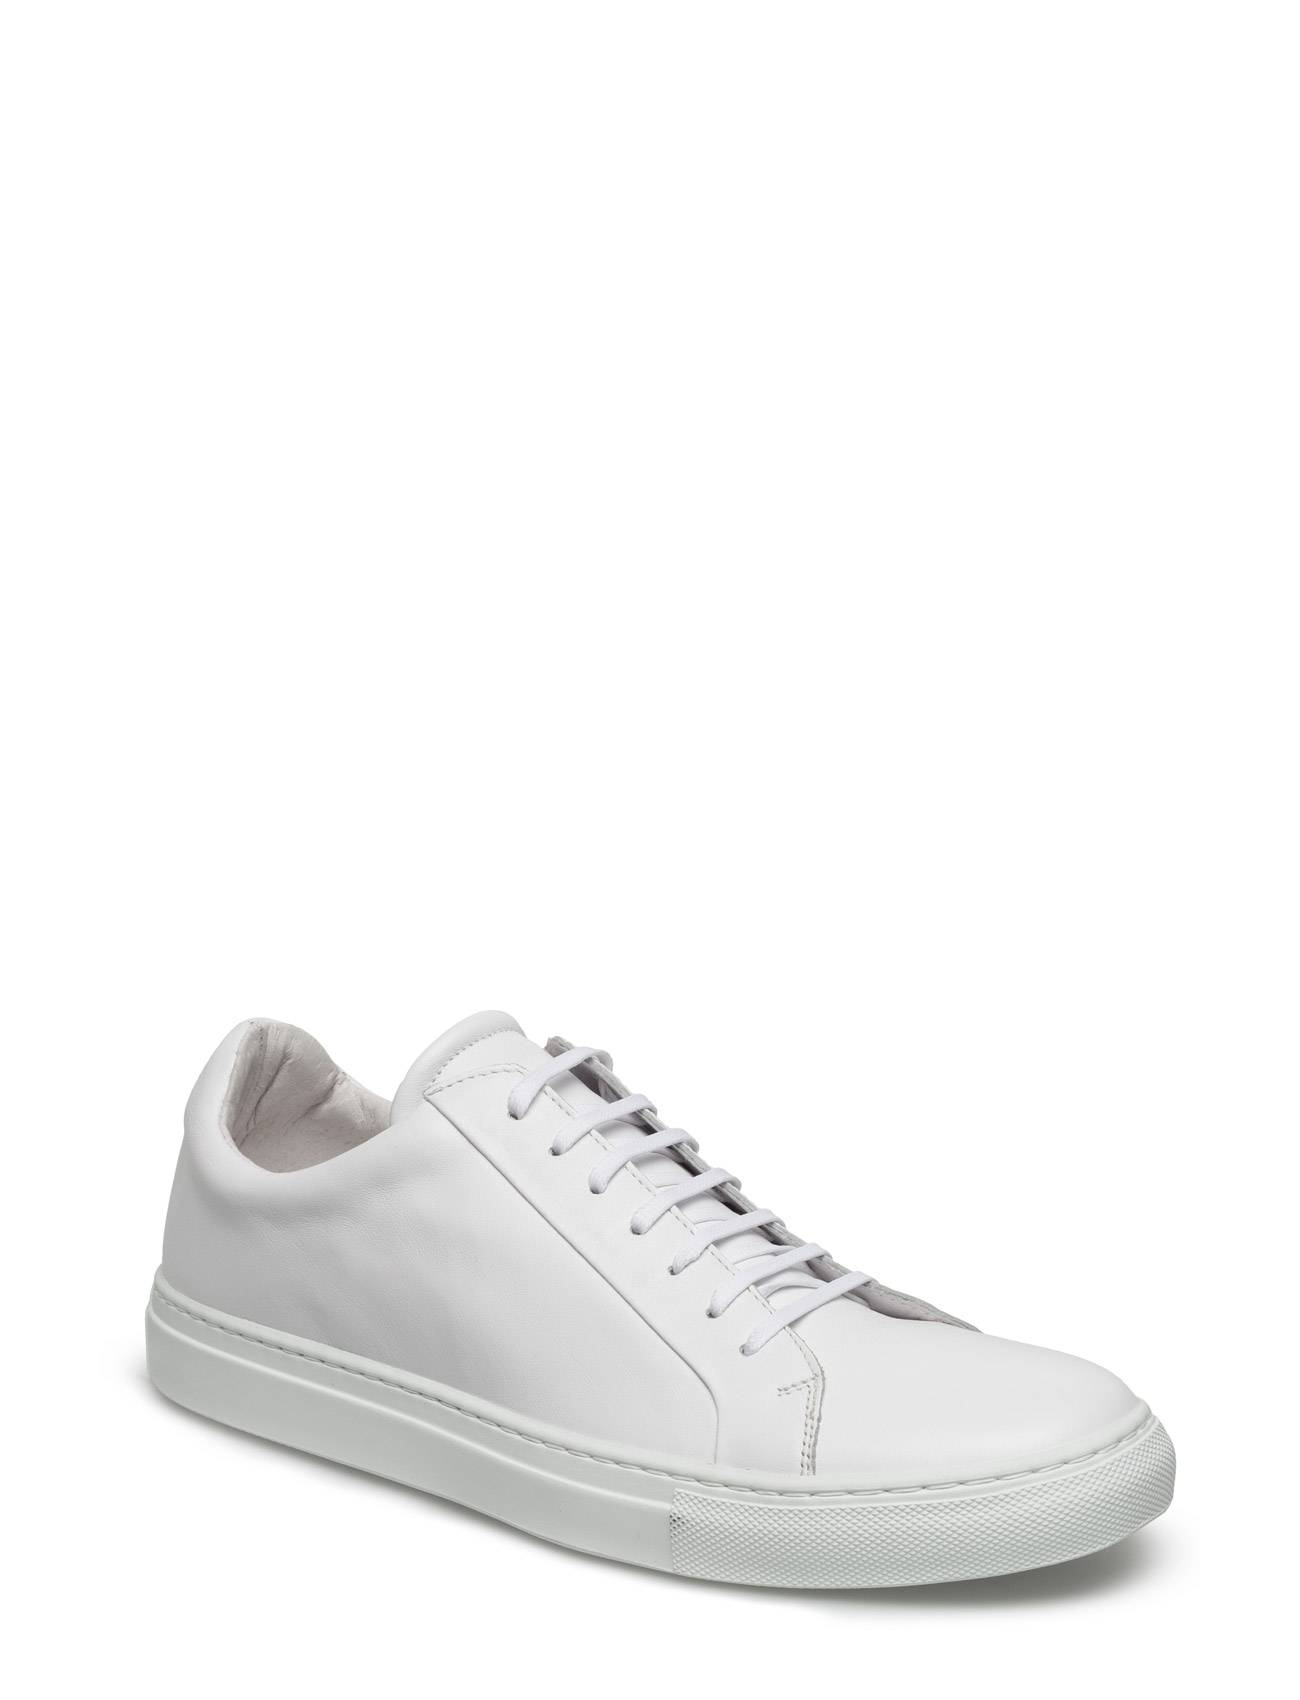 J. Lindeberg Sneaker Leather Summer Nappa